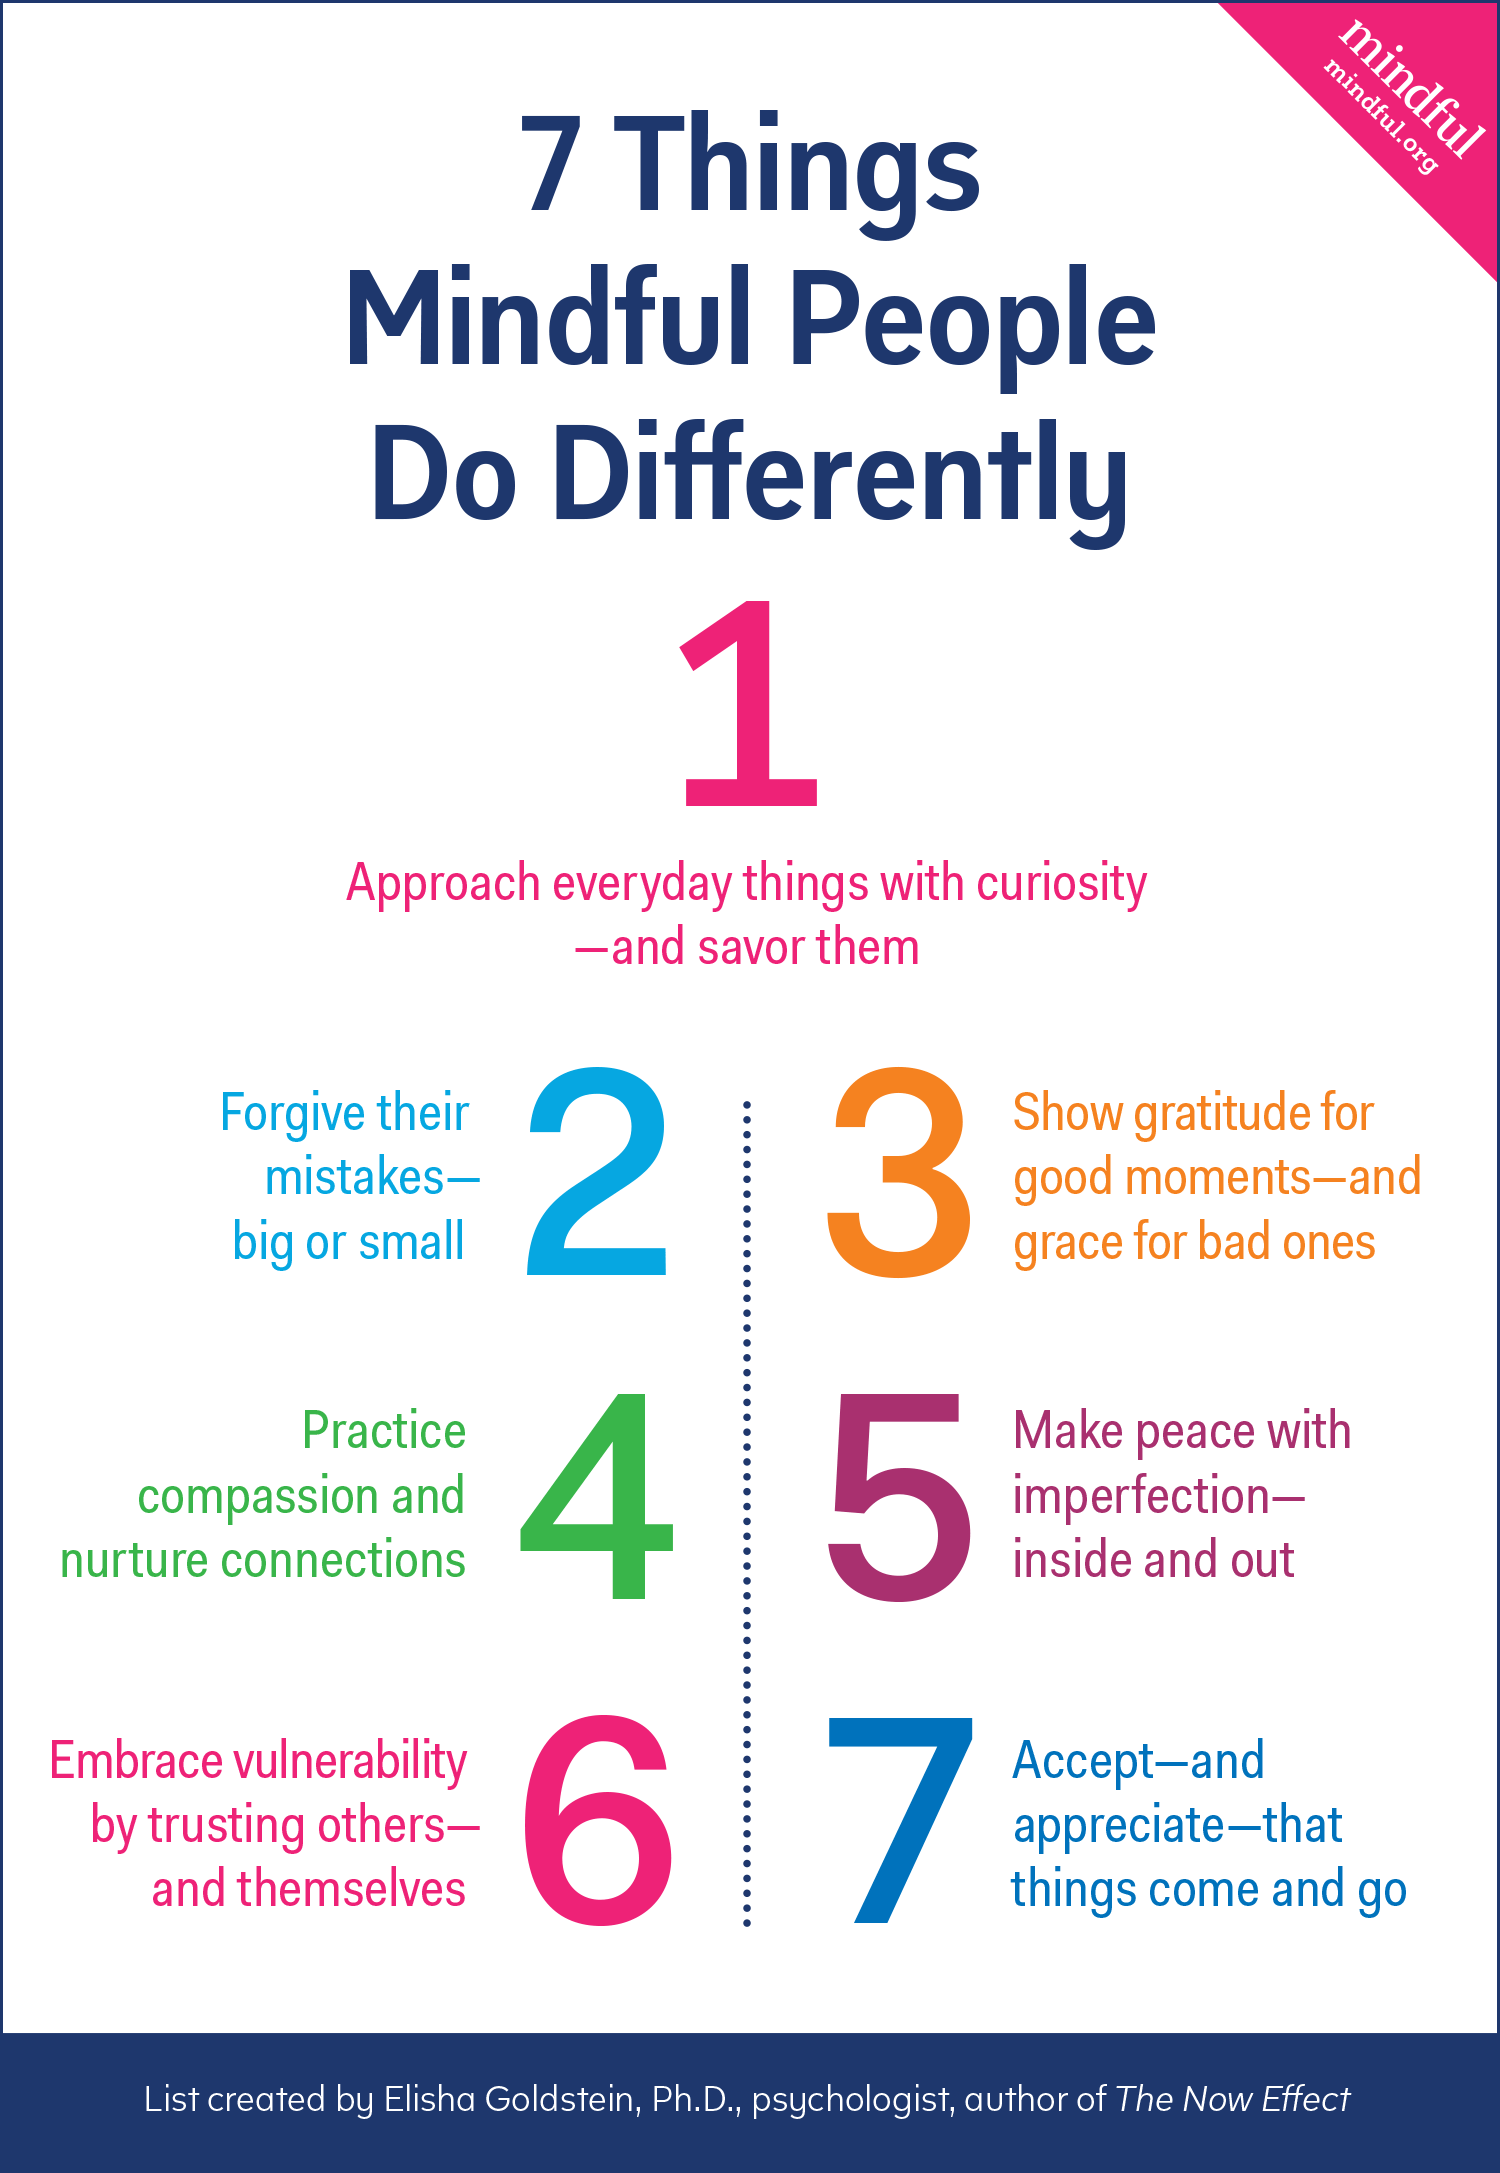 7 things mindful people do differently infographic